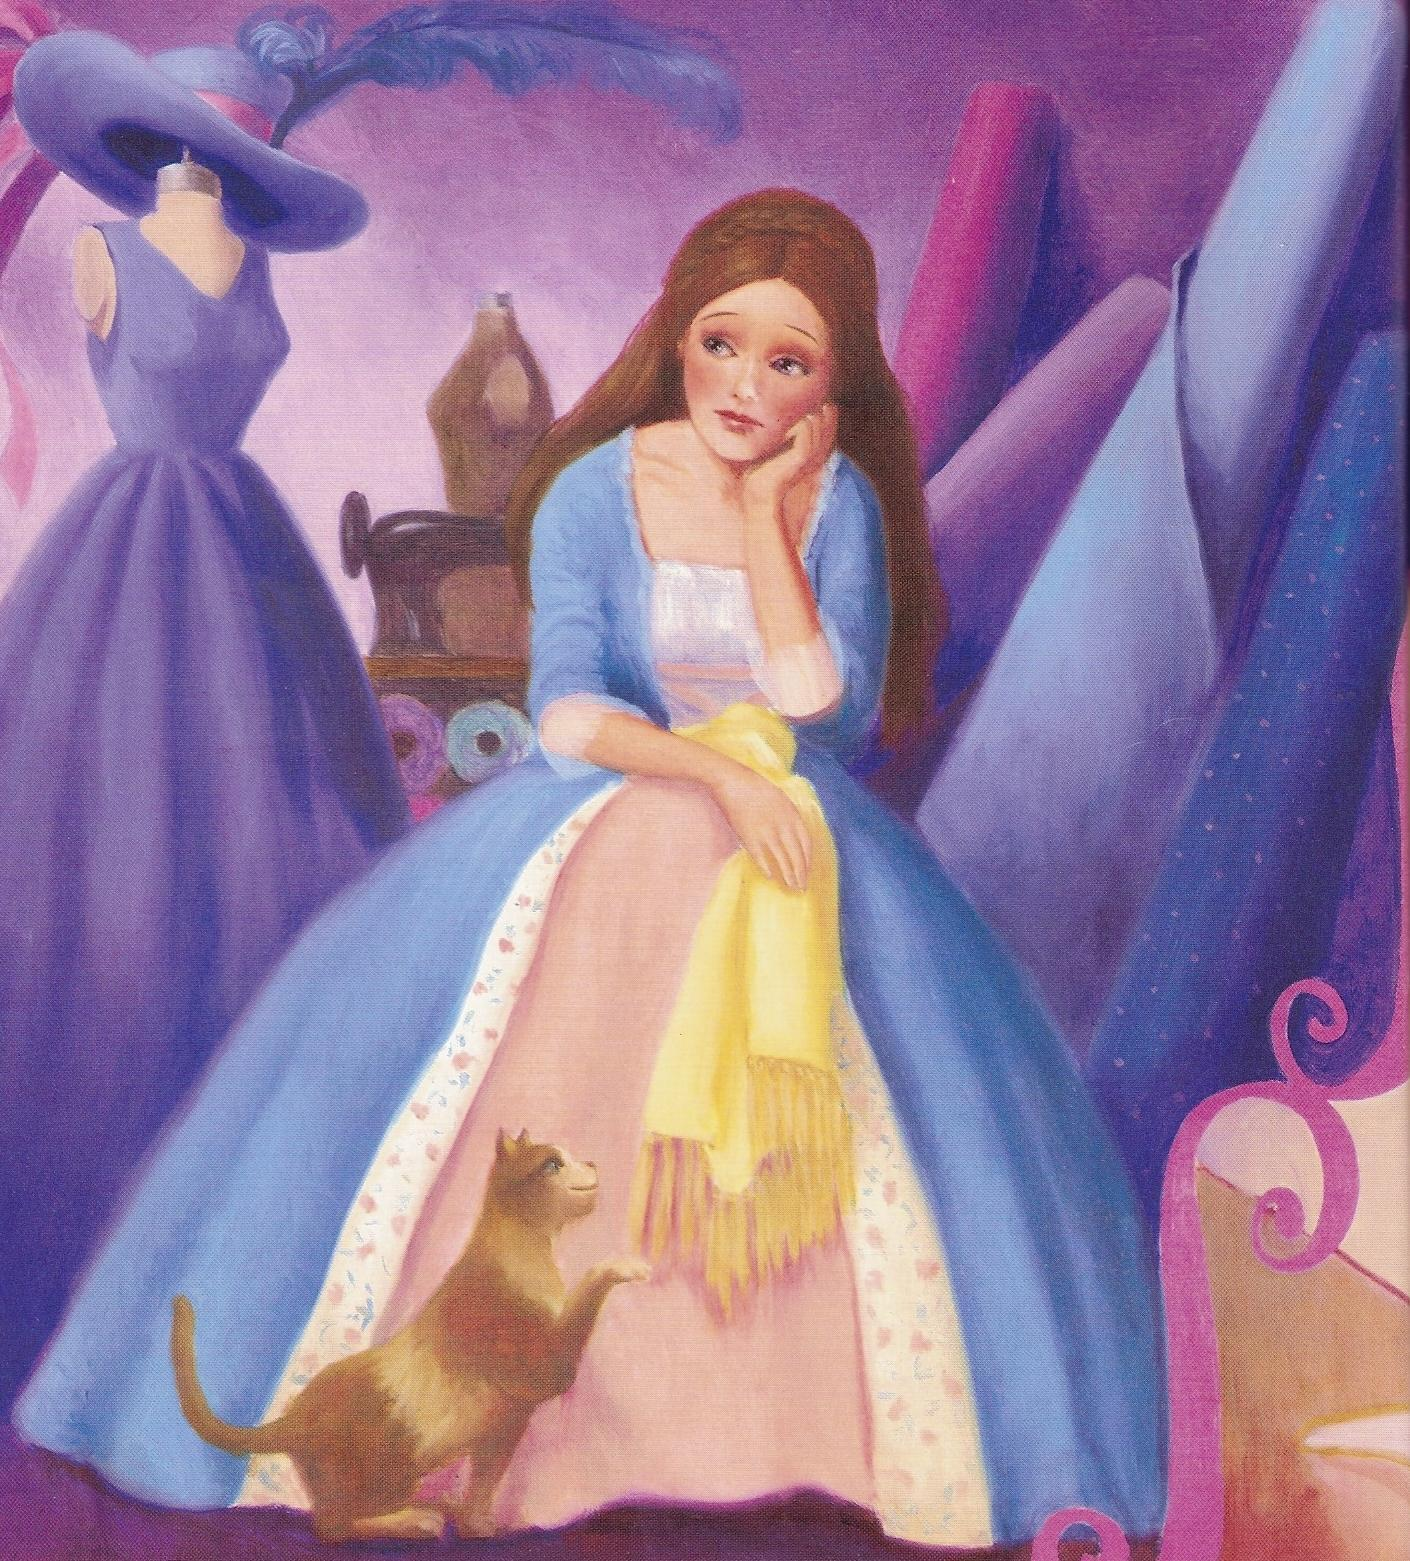 Image Princess And The Pauper Barbie Princess And The